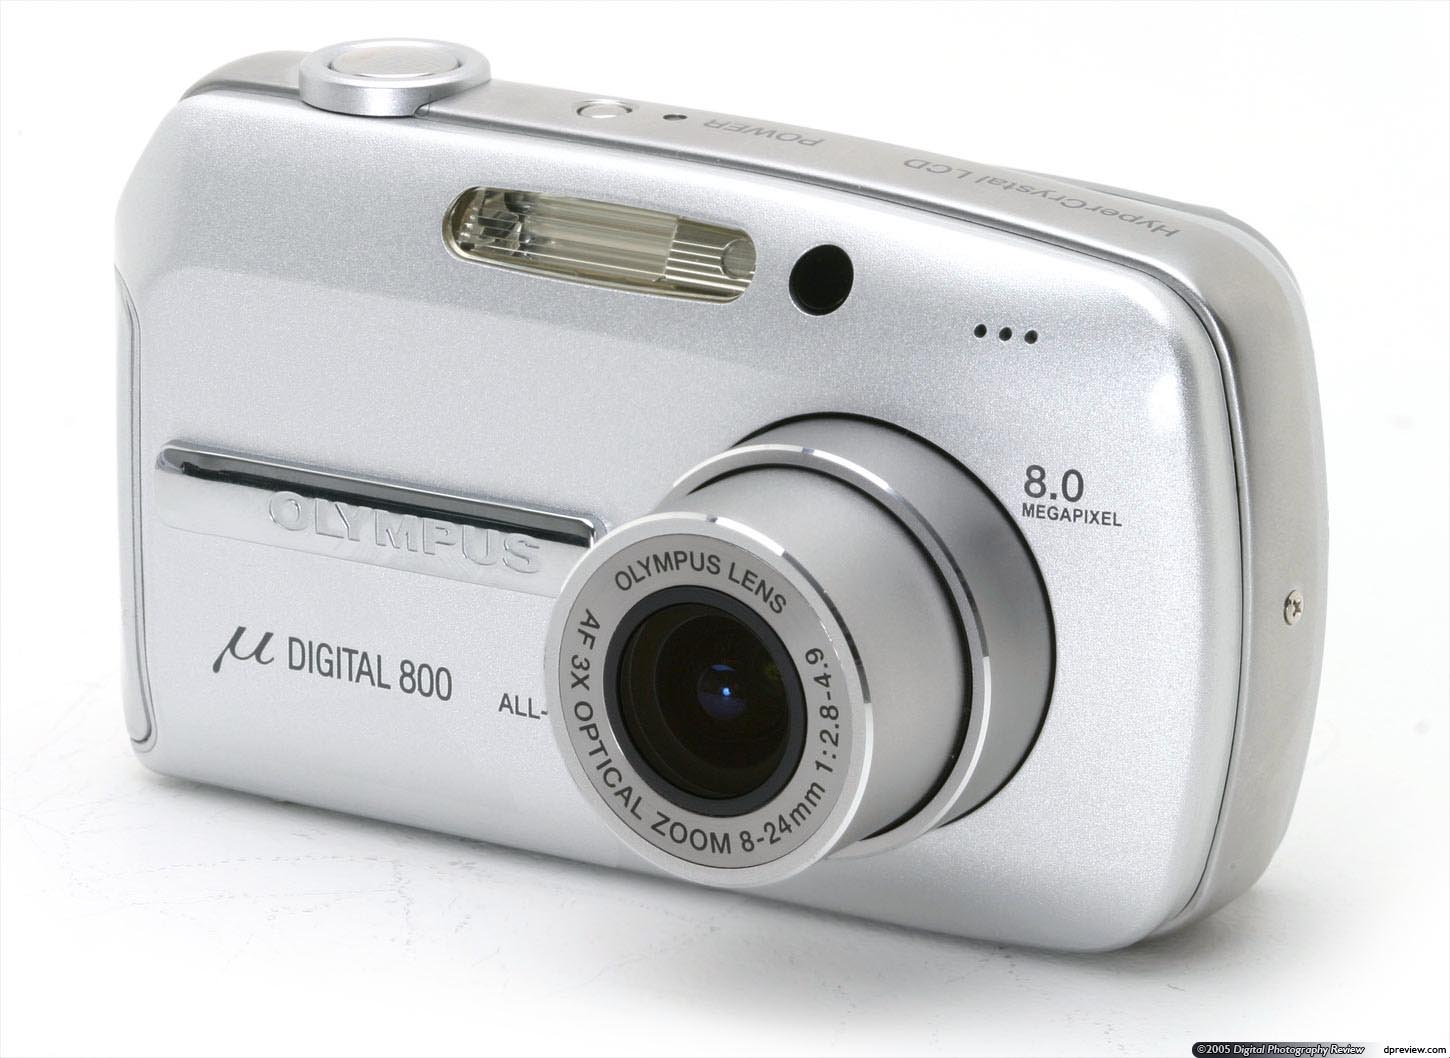 olympus unveiled its first 8mp compact the digital 800 stylus 800 digital back in may 2005 as well as offering one of the highest pixel counts in its - Olympus Digital Camera